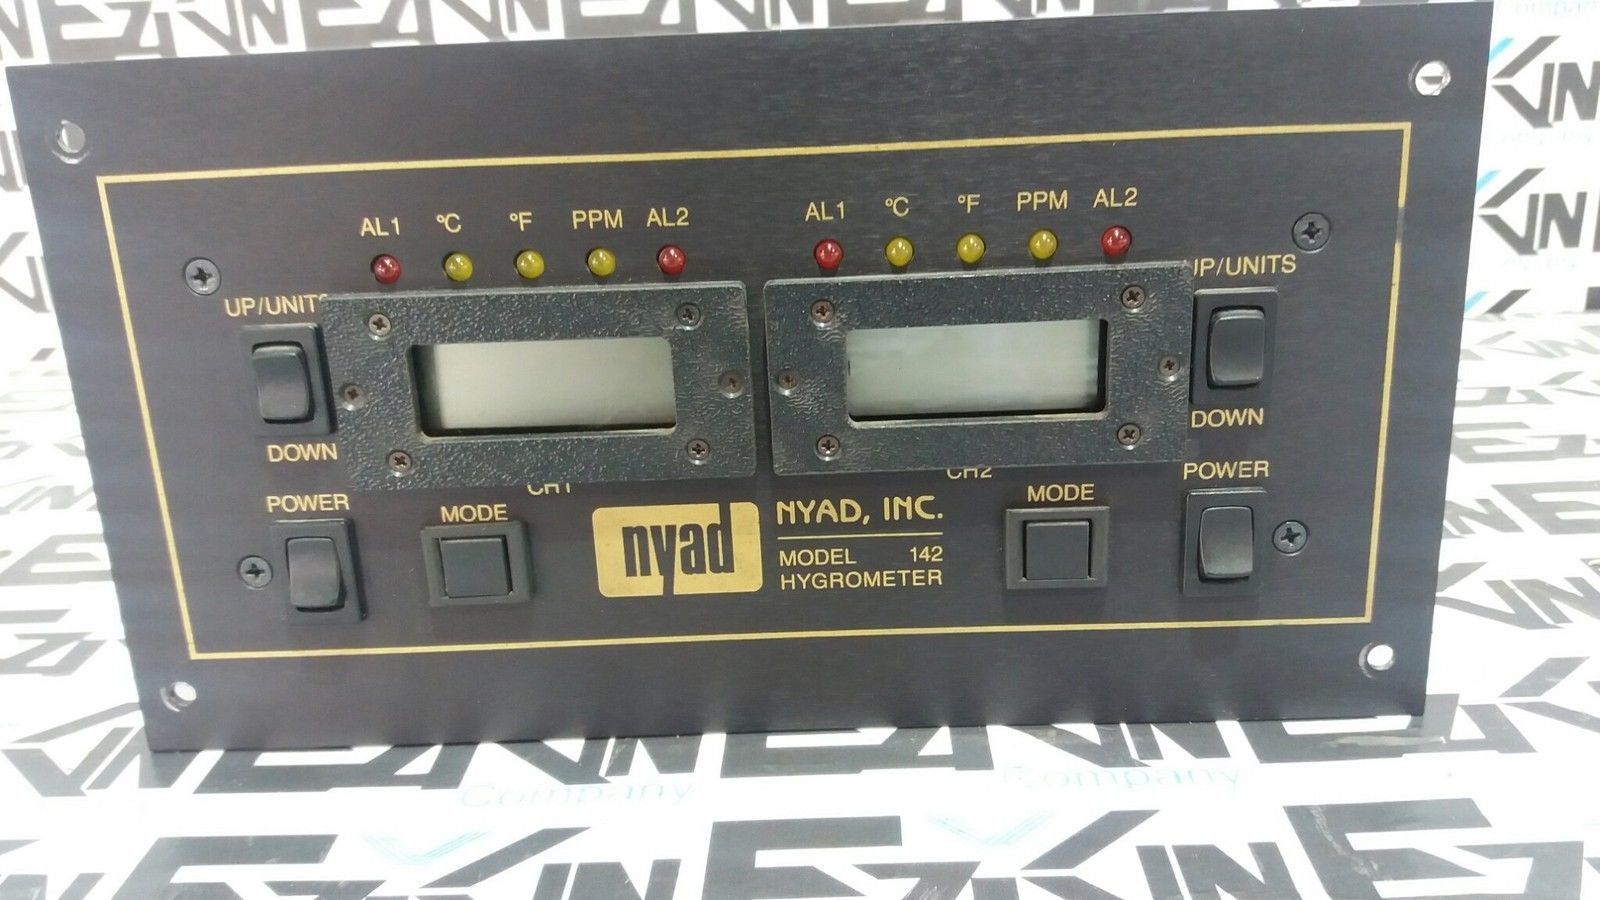 NYAD MA-142 HYGROMETER DEWPOINT MOISTURE ANALYZER MODEL